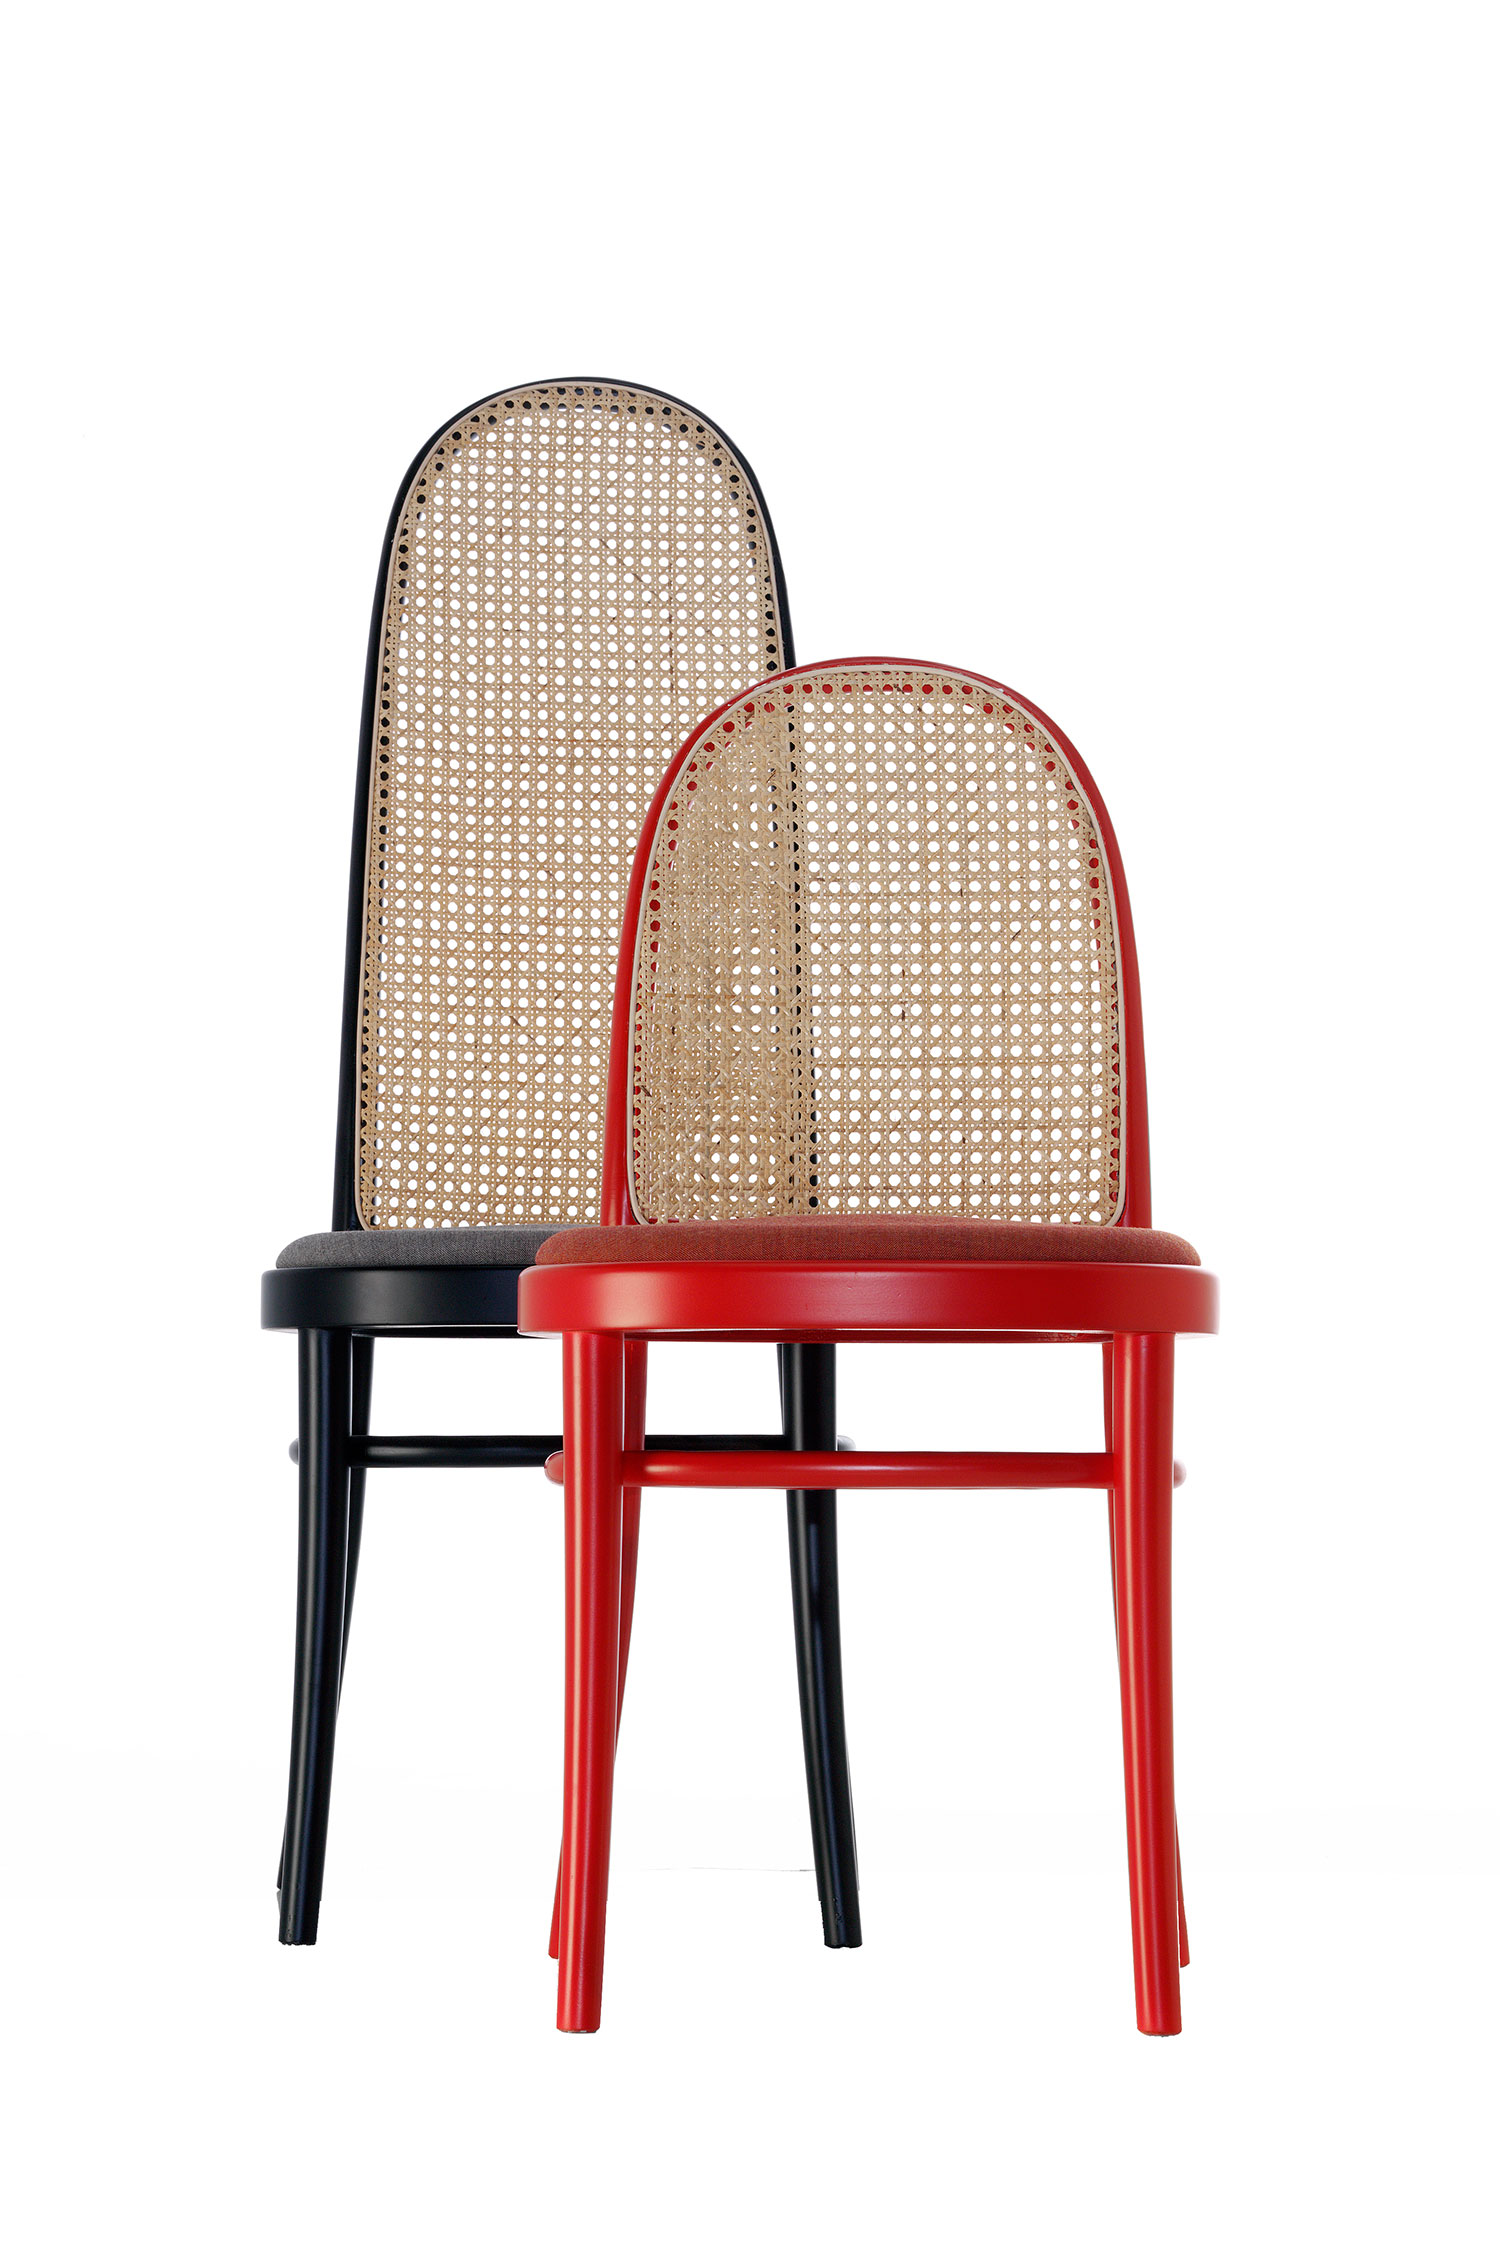 Morris Chairs Gebruder Thonet Morris Chairs By Gamfratesi Best Of